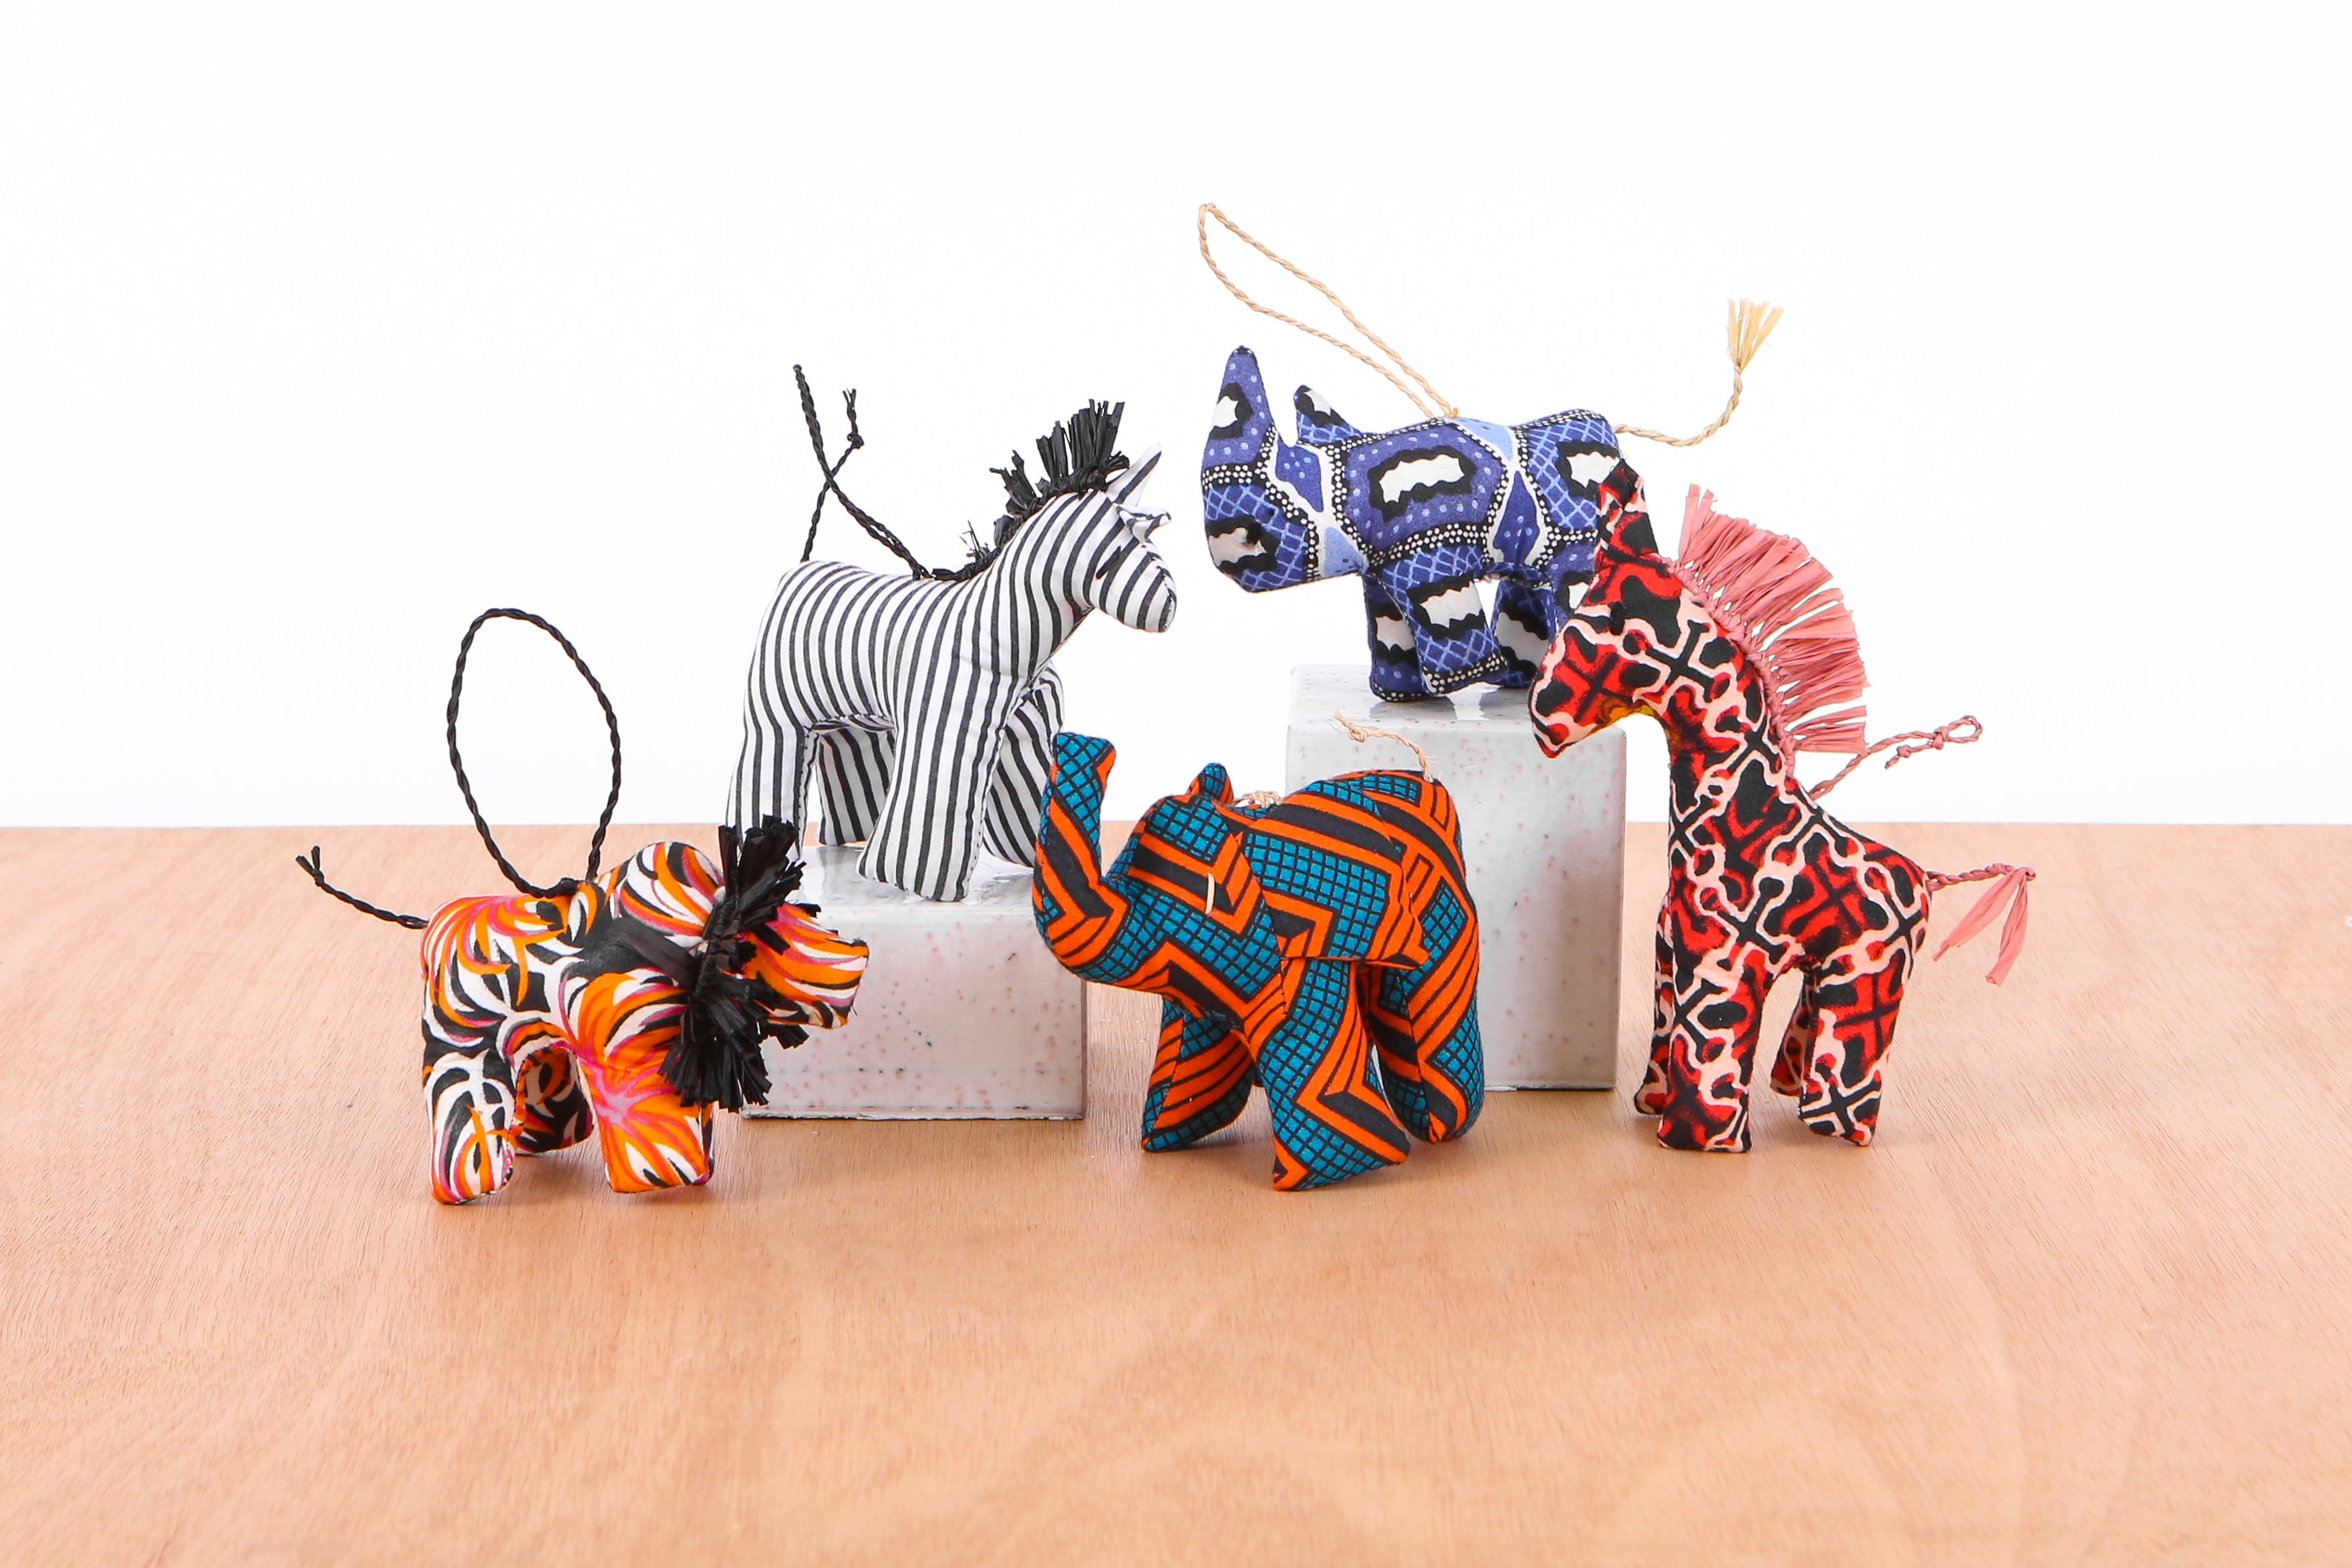 Set of 10 Assorted African Fabric Ornaments